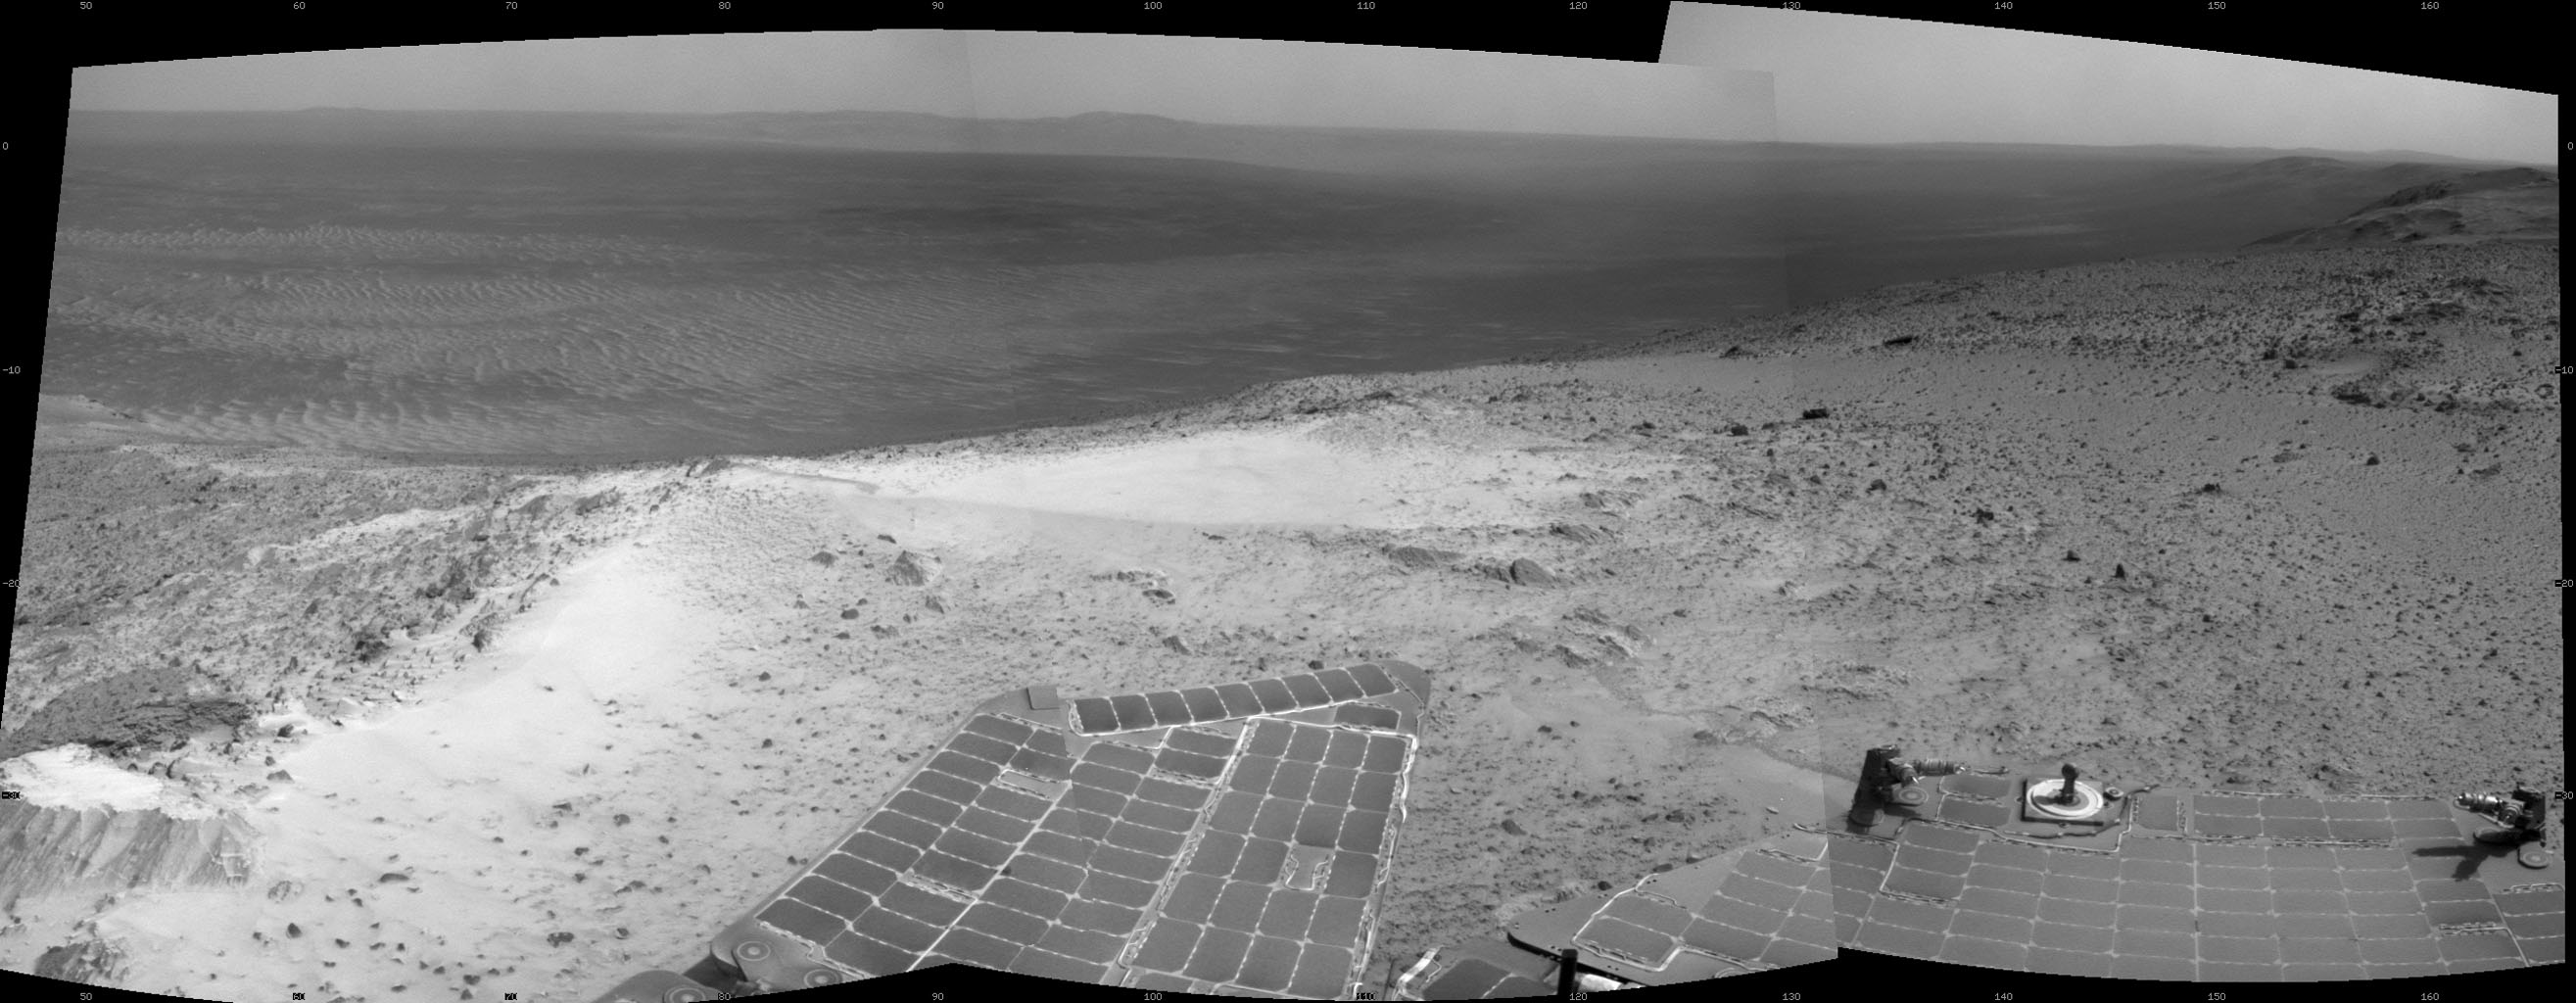 Martian Skies Clearing over Opportunity Rover  NASAs